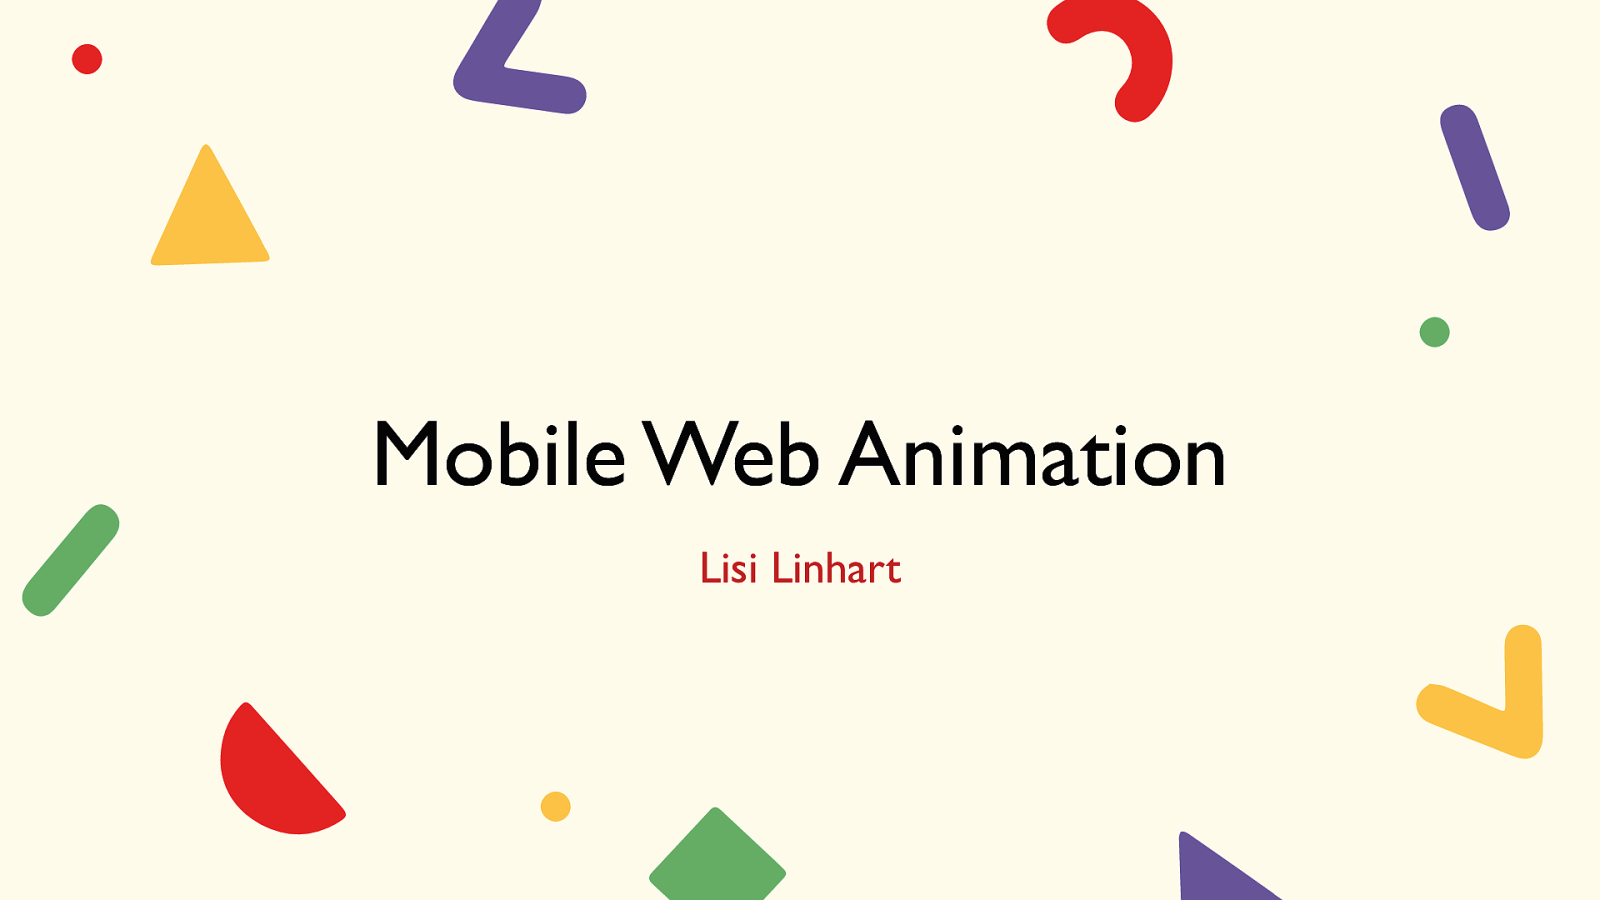 Mobile Web Animation